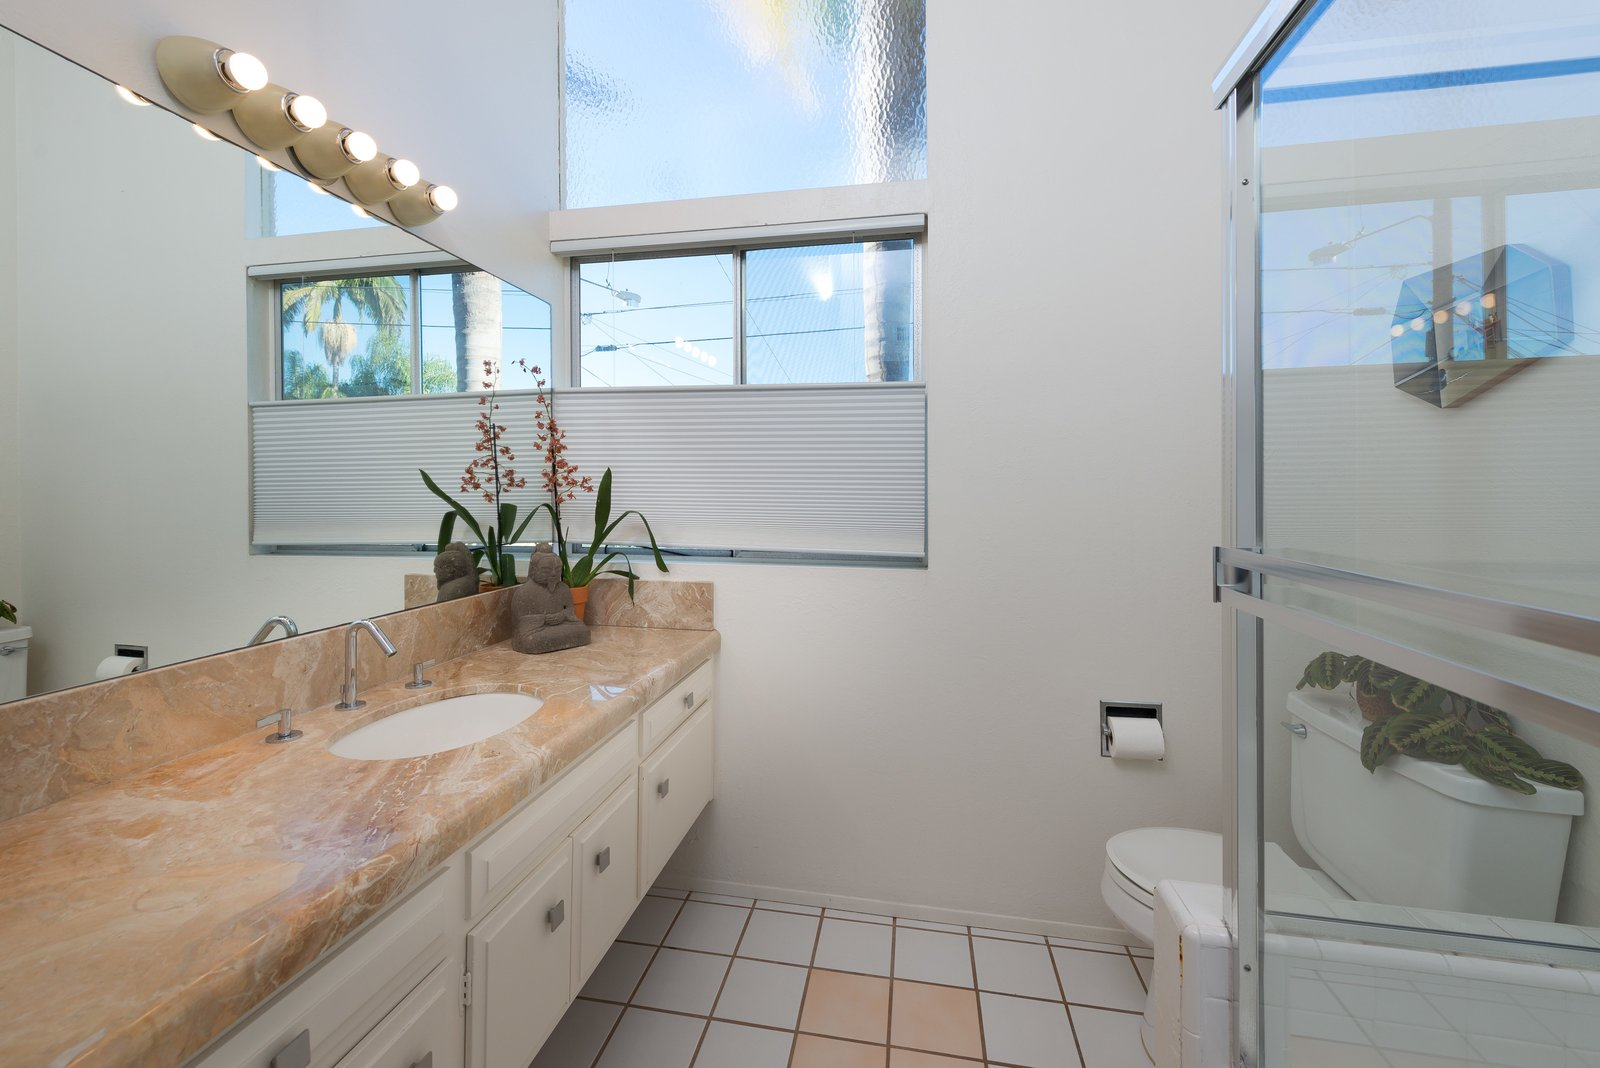 Bath, Wall, Two Piece, Enclosed, and Undermount  Bath Two Piece Undermount Photos from An Immaculate Midcentury Abode in San Diego Asks $1.55M